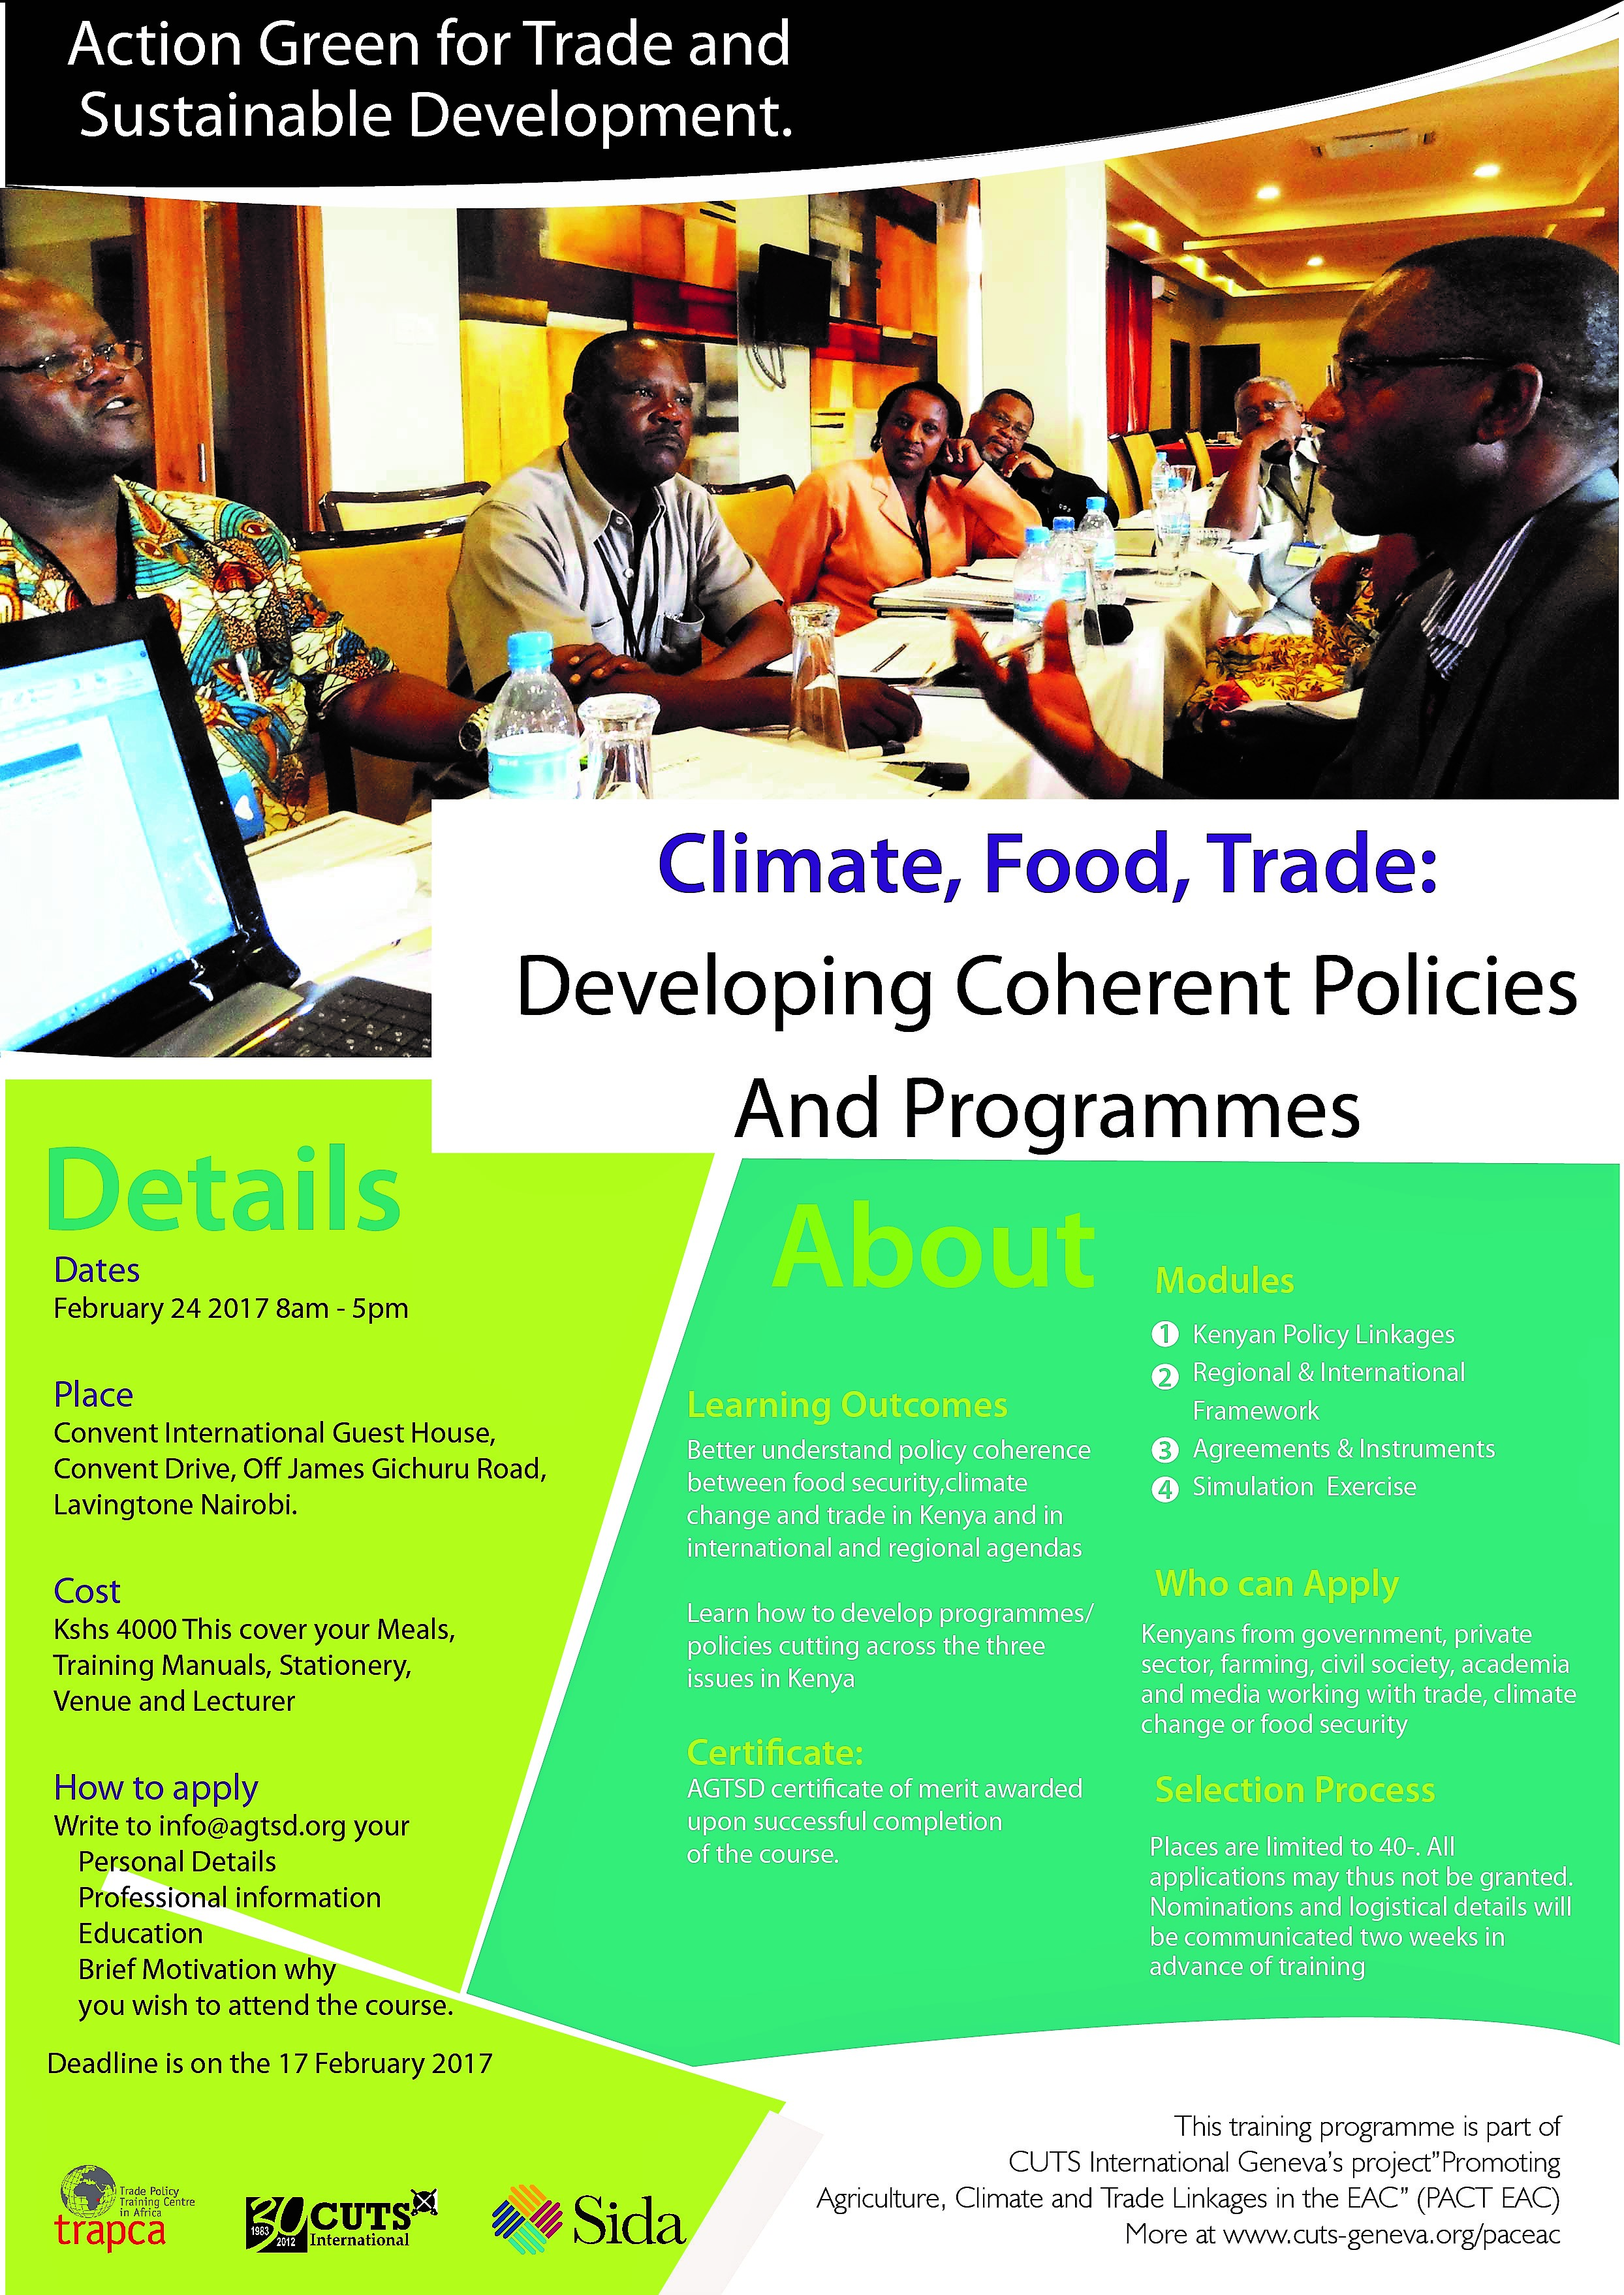 training-on-climate-food-and-trade-developing-coherence-policies-and-programmes-in-east-africa-community